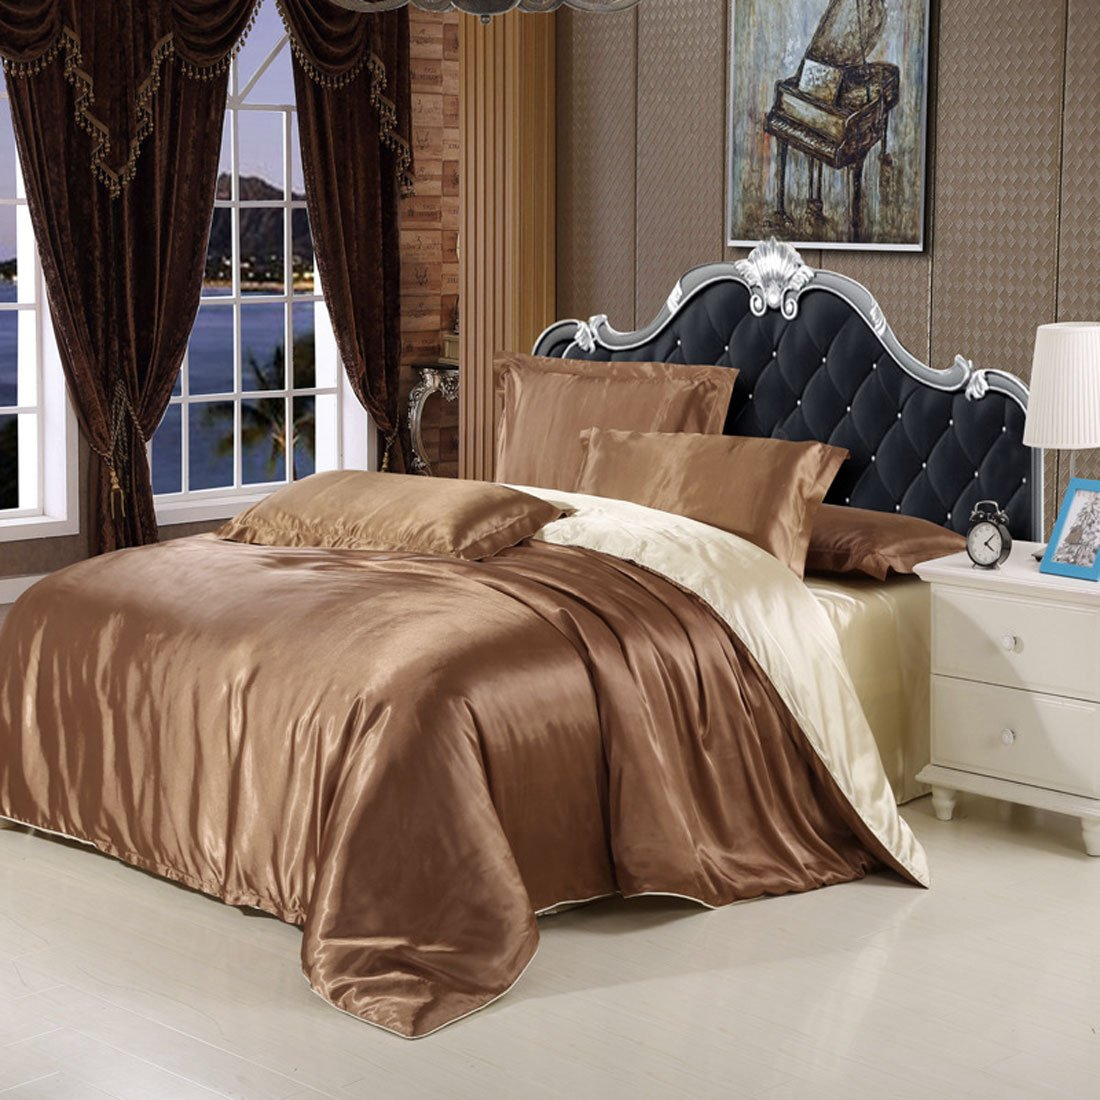 Silk Bedding Sheets Discounted Season Sale Ease Bedding